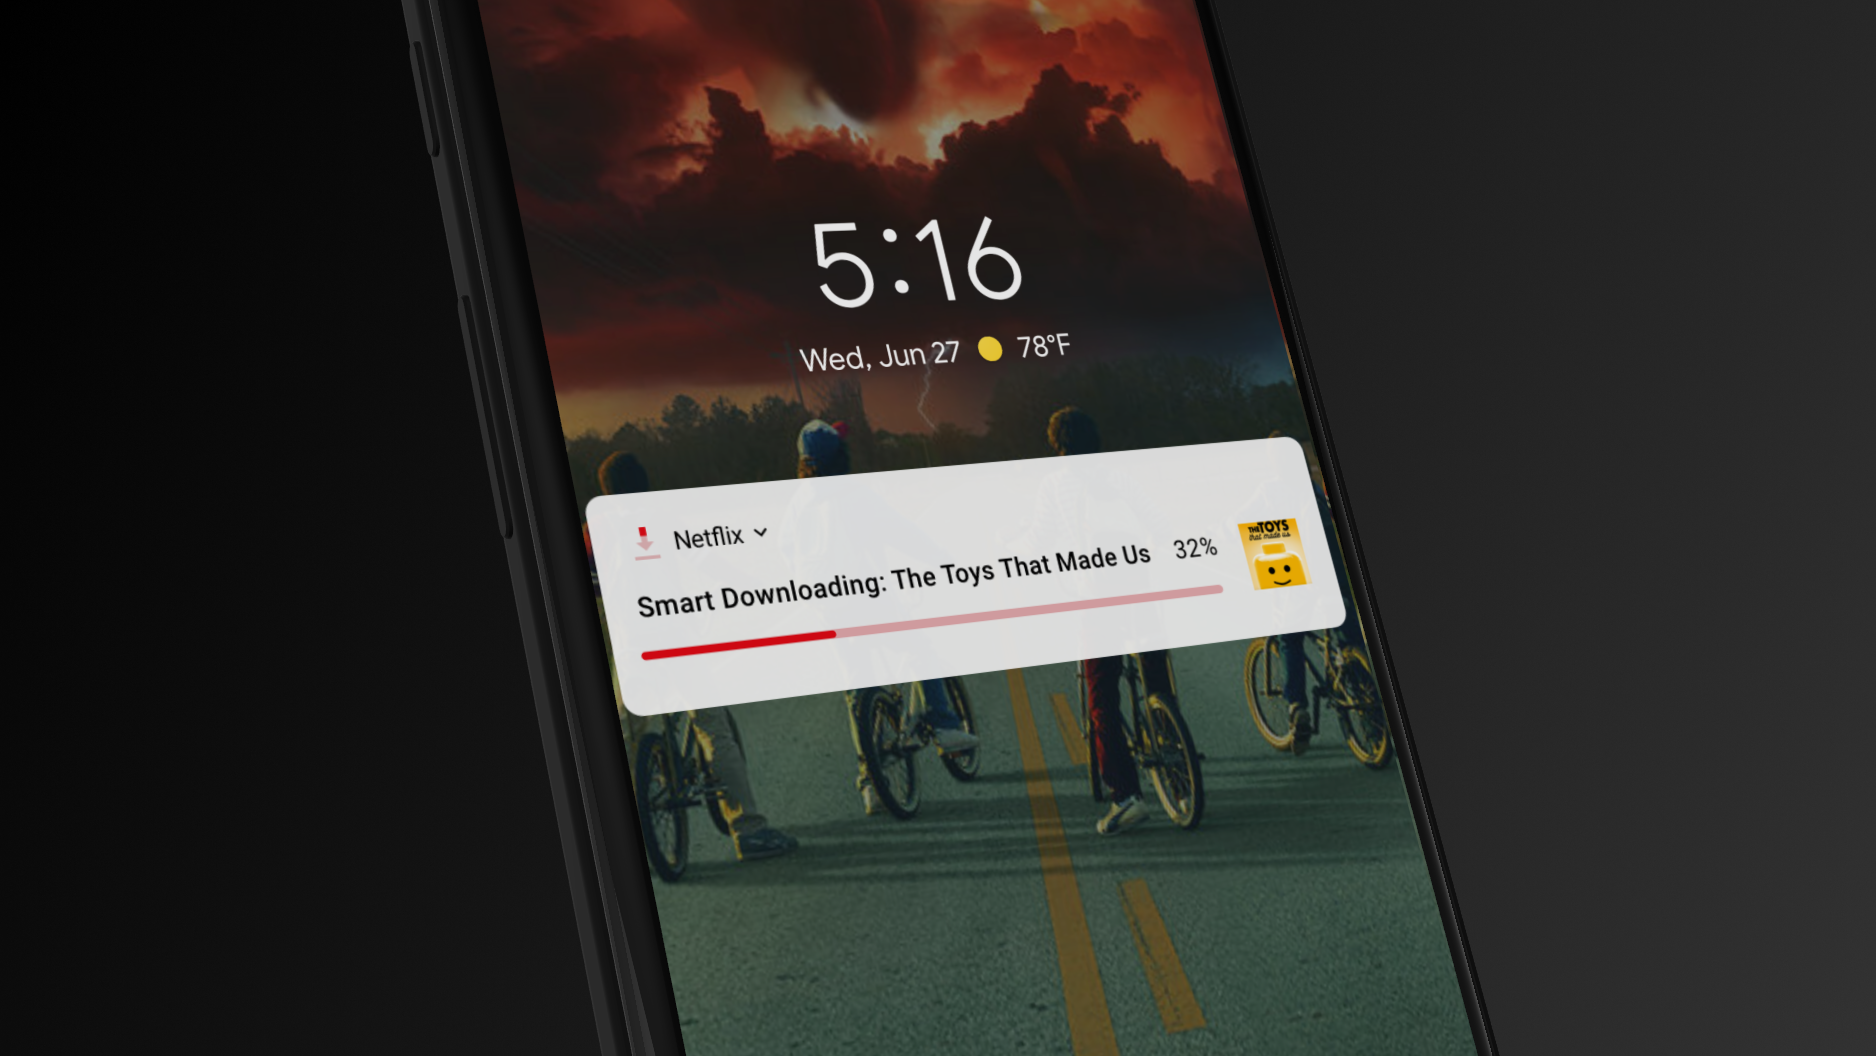 Netflix Adds Smart Downloads Feature To Android App